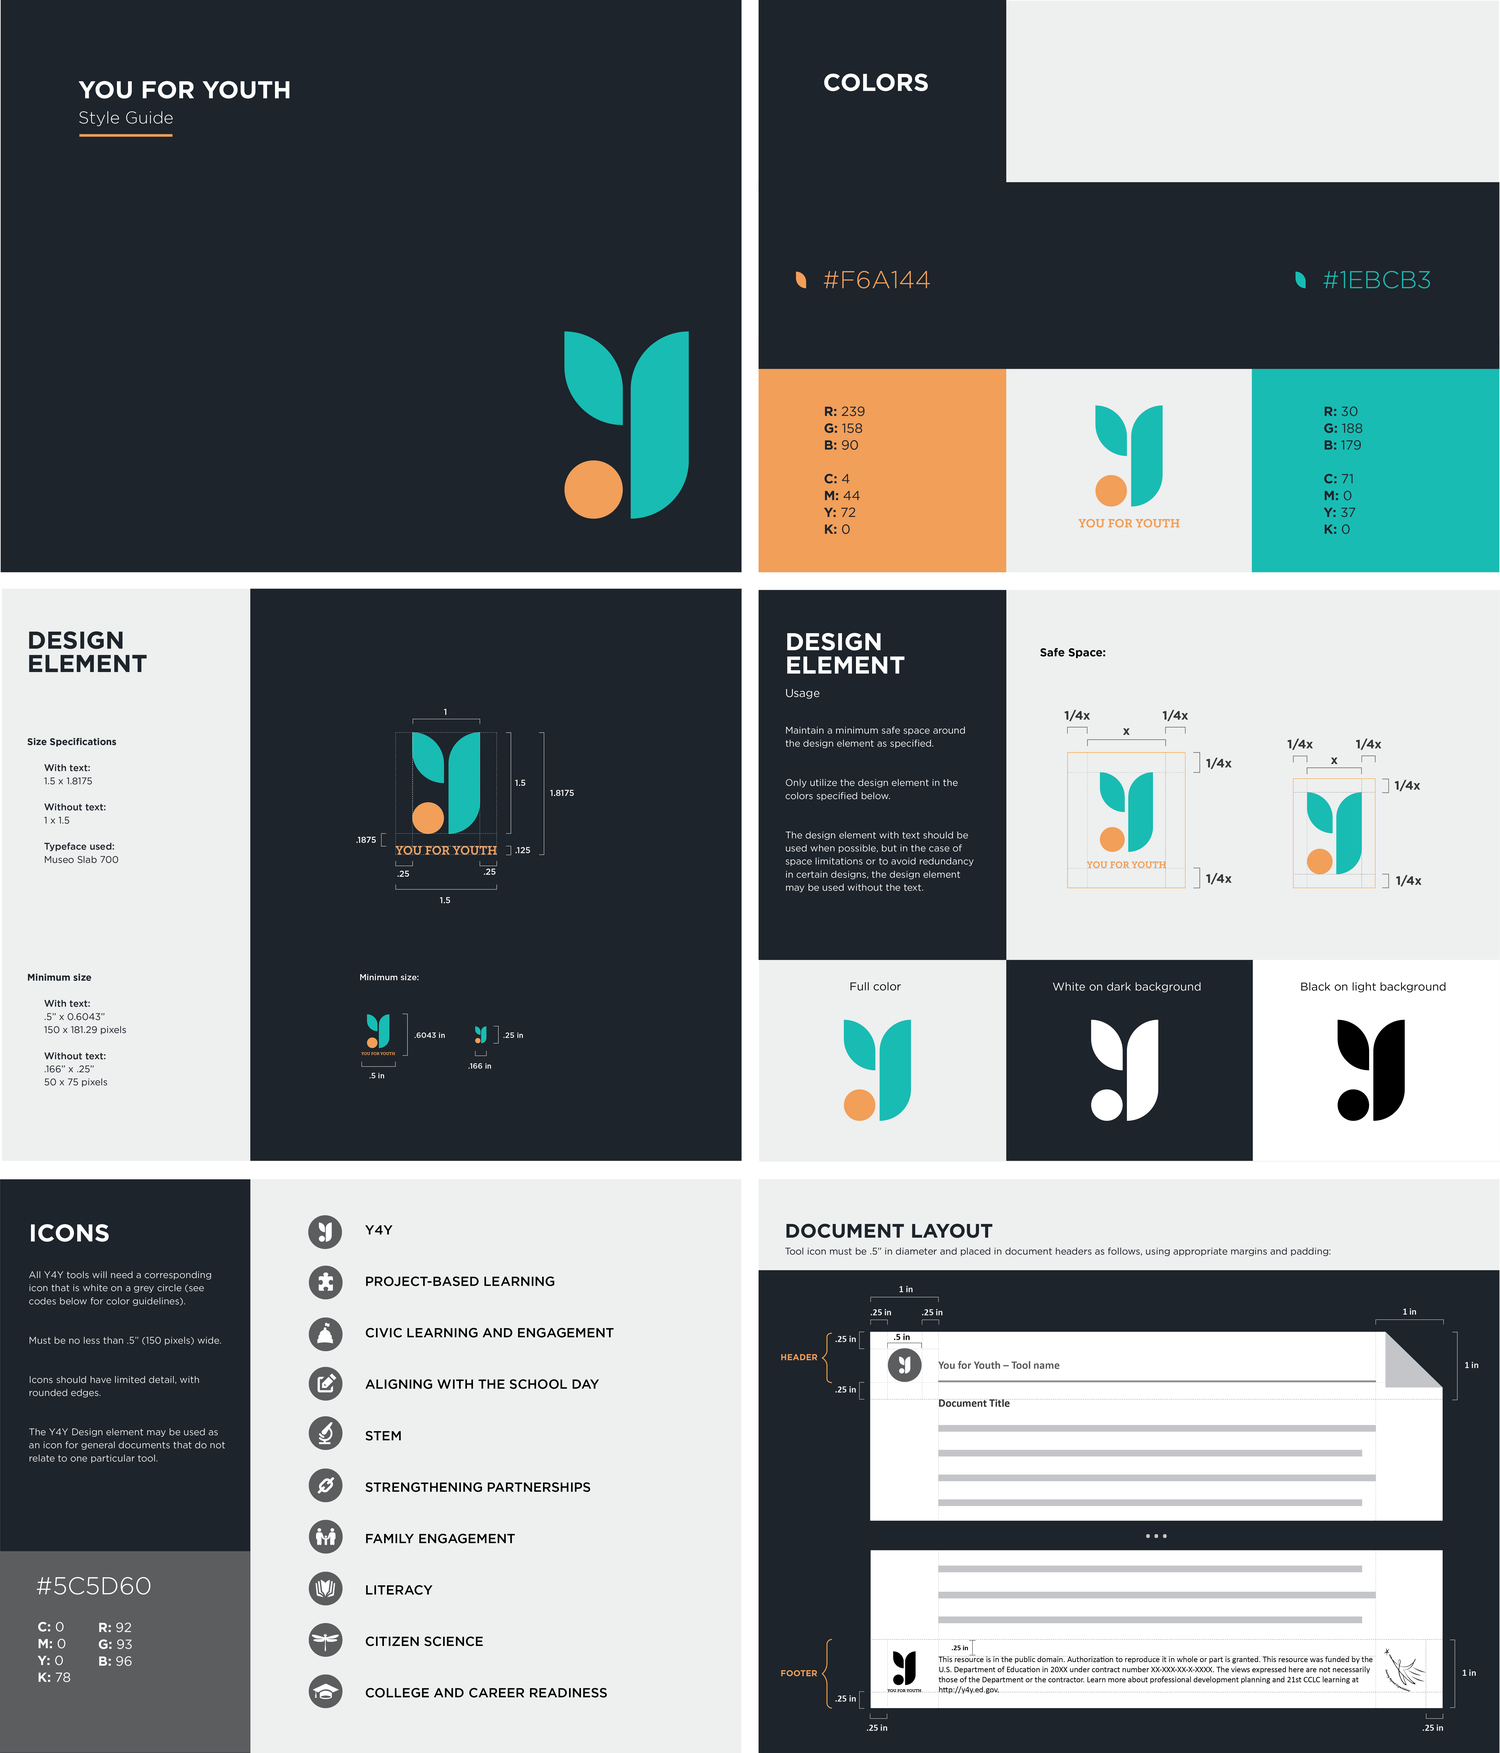 Brand Identity - Redesigned the logo and iconography and developed a style guide for You for Youth. Collaborated with other designers for feedback, and worked with the client to ensure the final design met their needs both visually and practically.